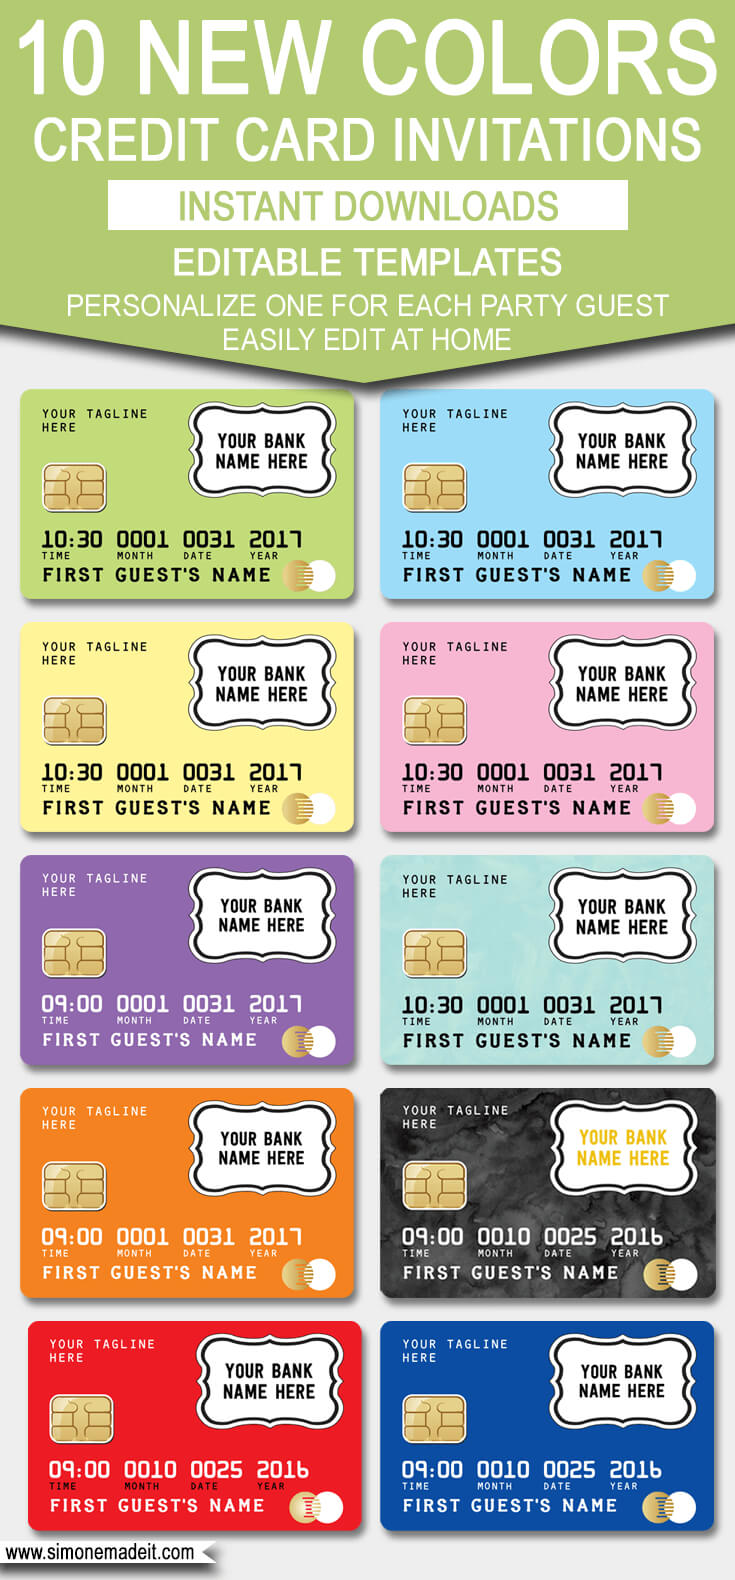 Credit Card Invitation Template – New Colors! | Scavenger Intended For Credit Card Template For Kids